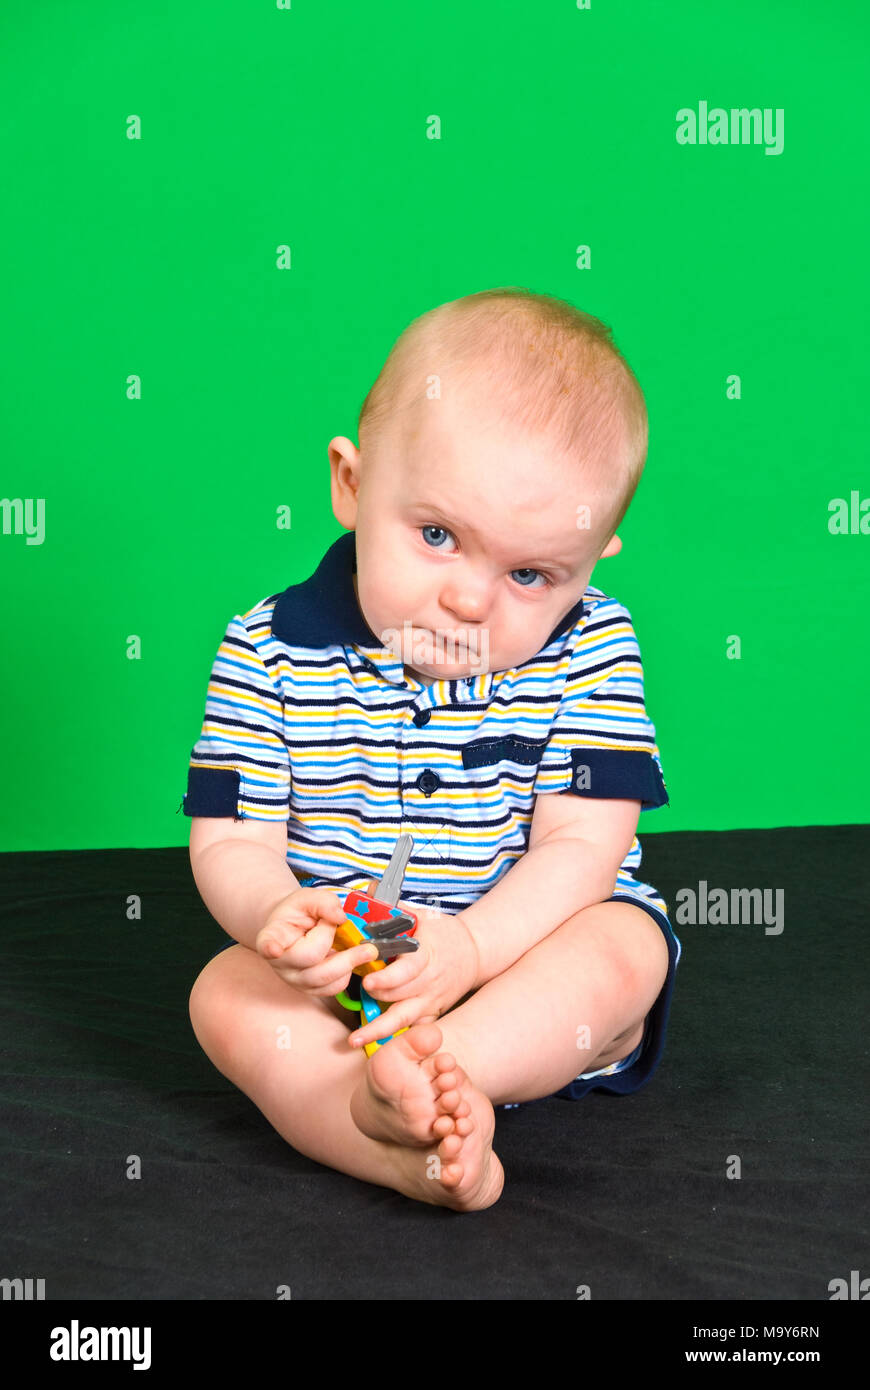 Sad 10 Month old Baby Boy on Green Screen playing with toy - Stock Image